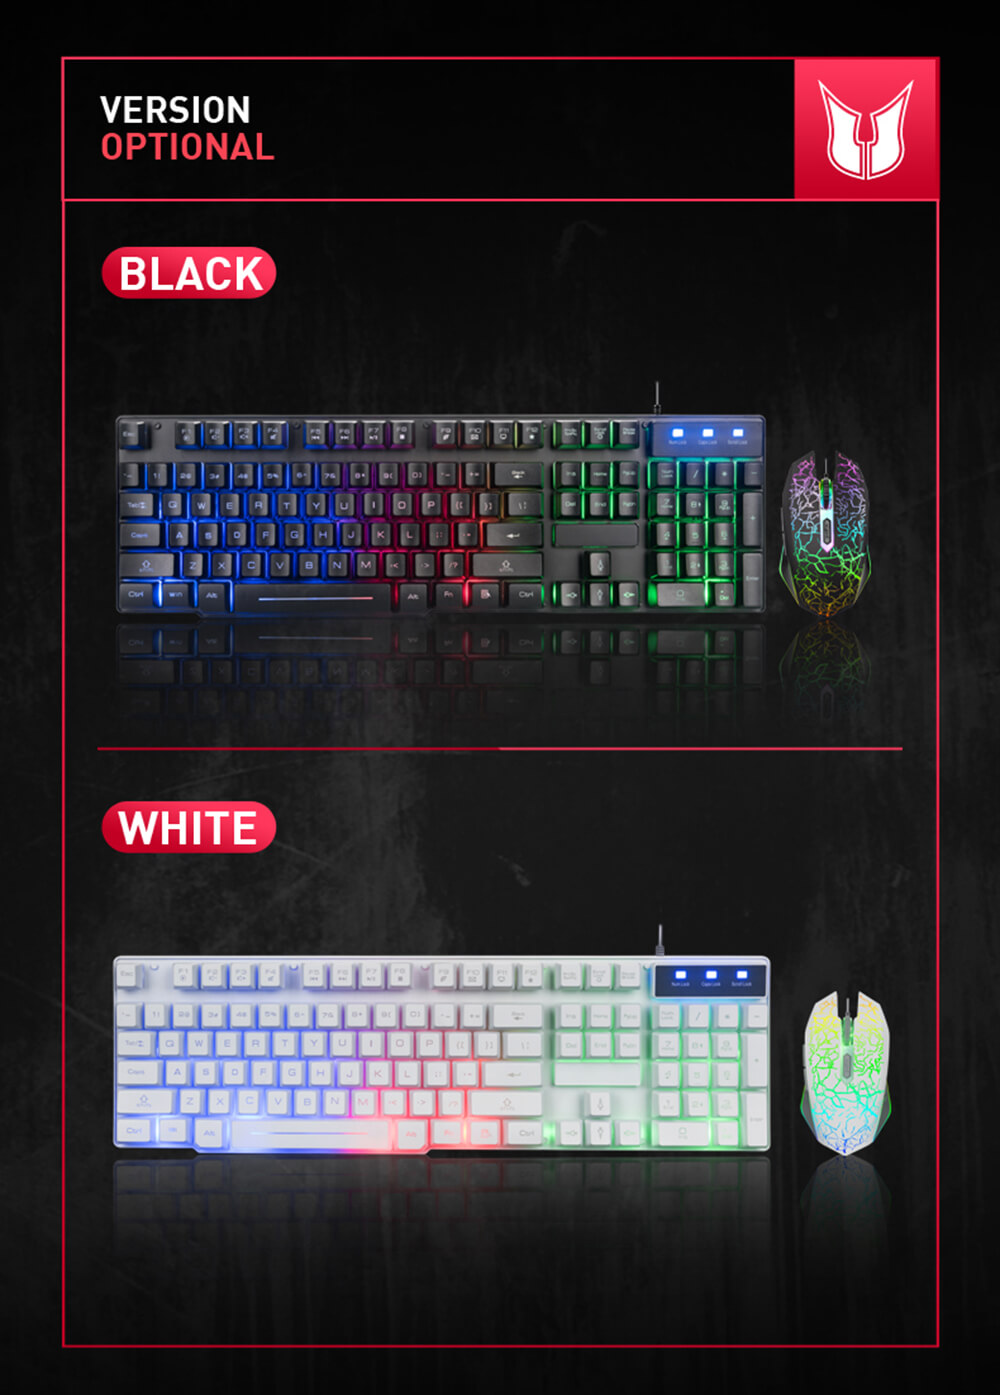 MK100 Keyboard Wired USB Waterproof Backlight Keyboard Game Office Mechanical Keyboard Mouse Set - Black